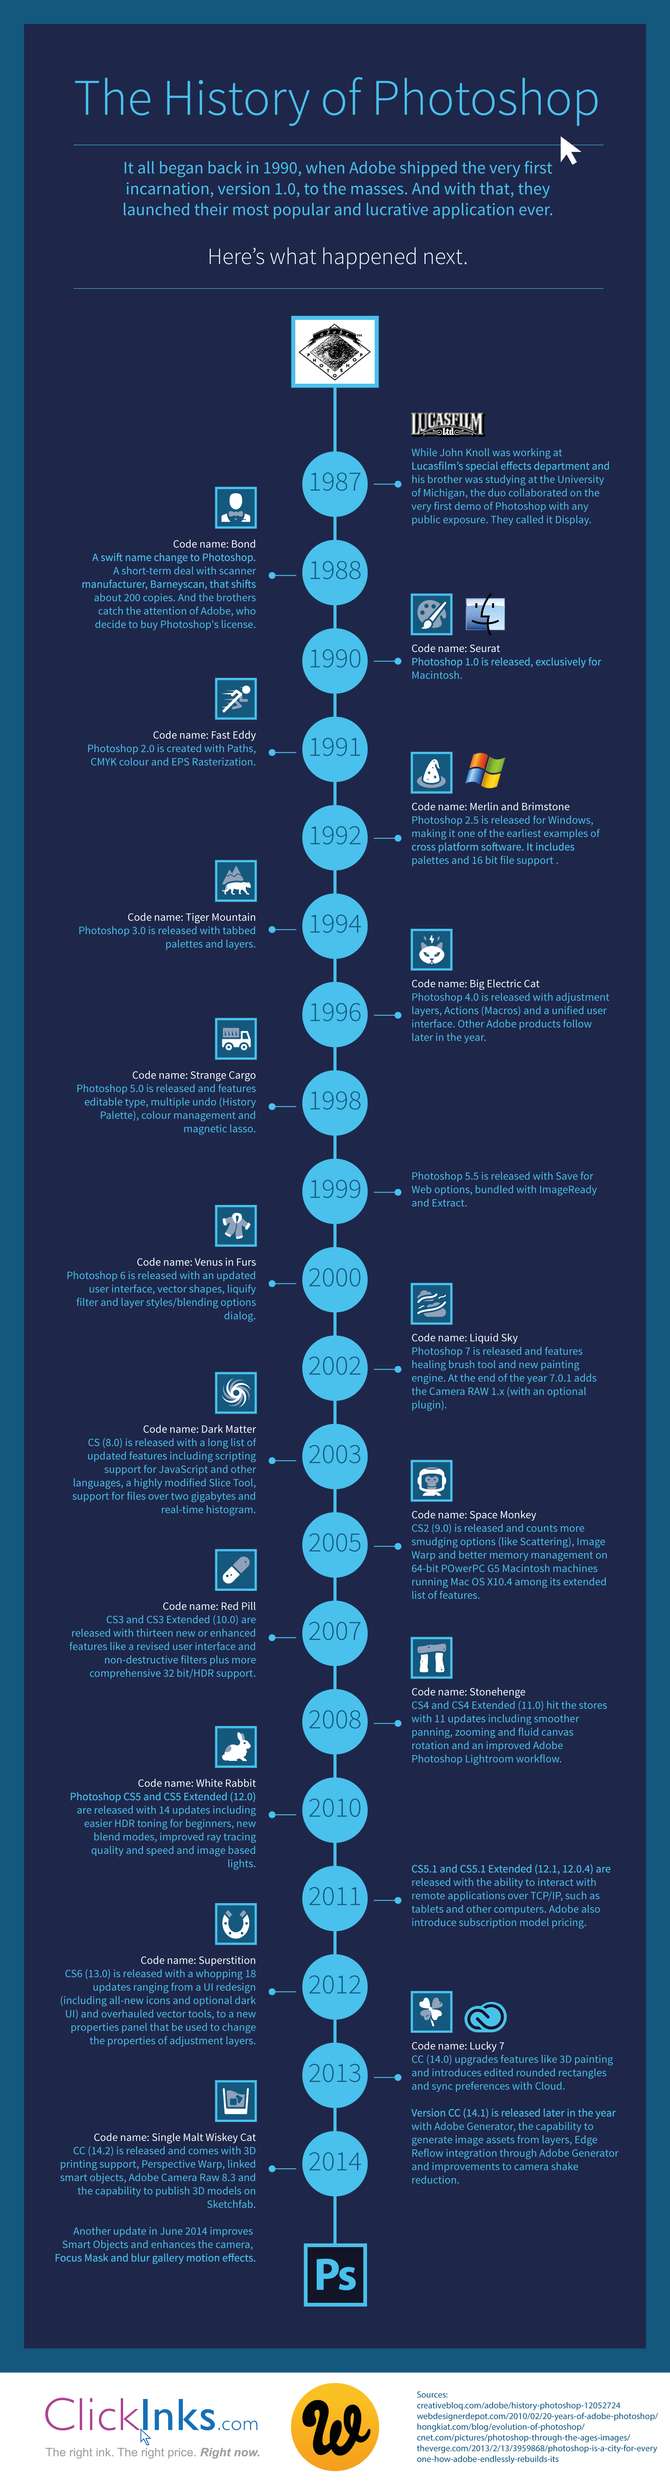 INFOGRAPHIC: THE HISTORY OF PHOTOSHOP BY WEBDESIGNERDEPOT STAFF · WEB DESIGN · MAY 7, 2015